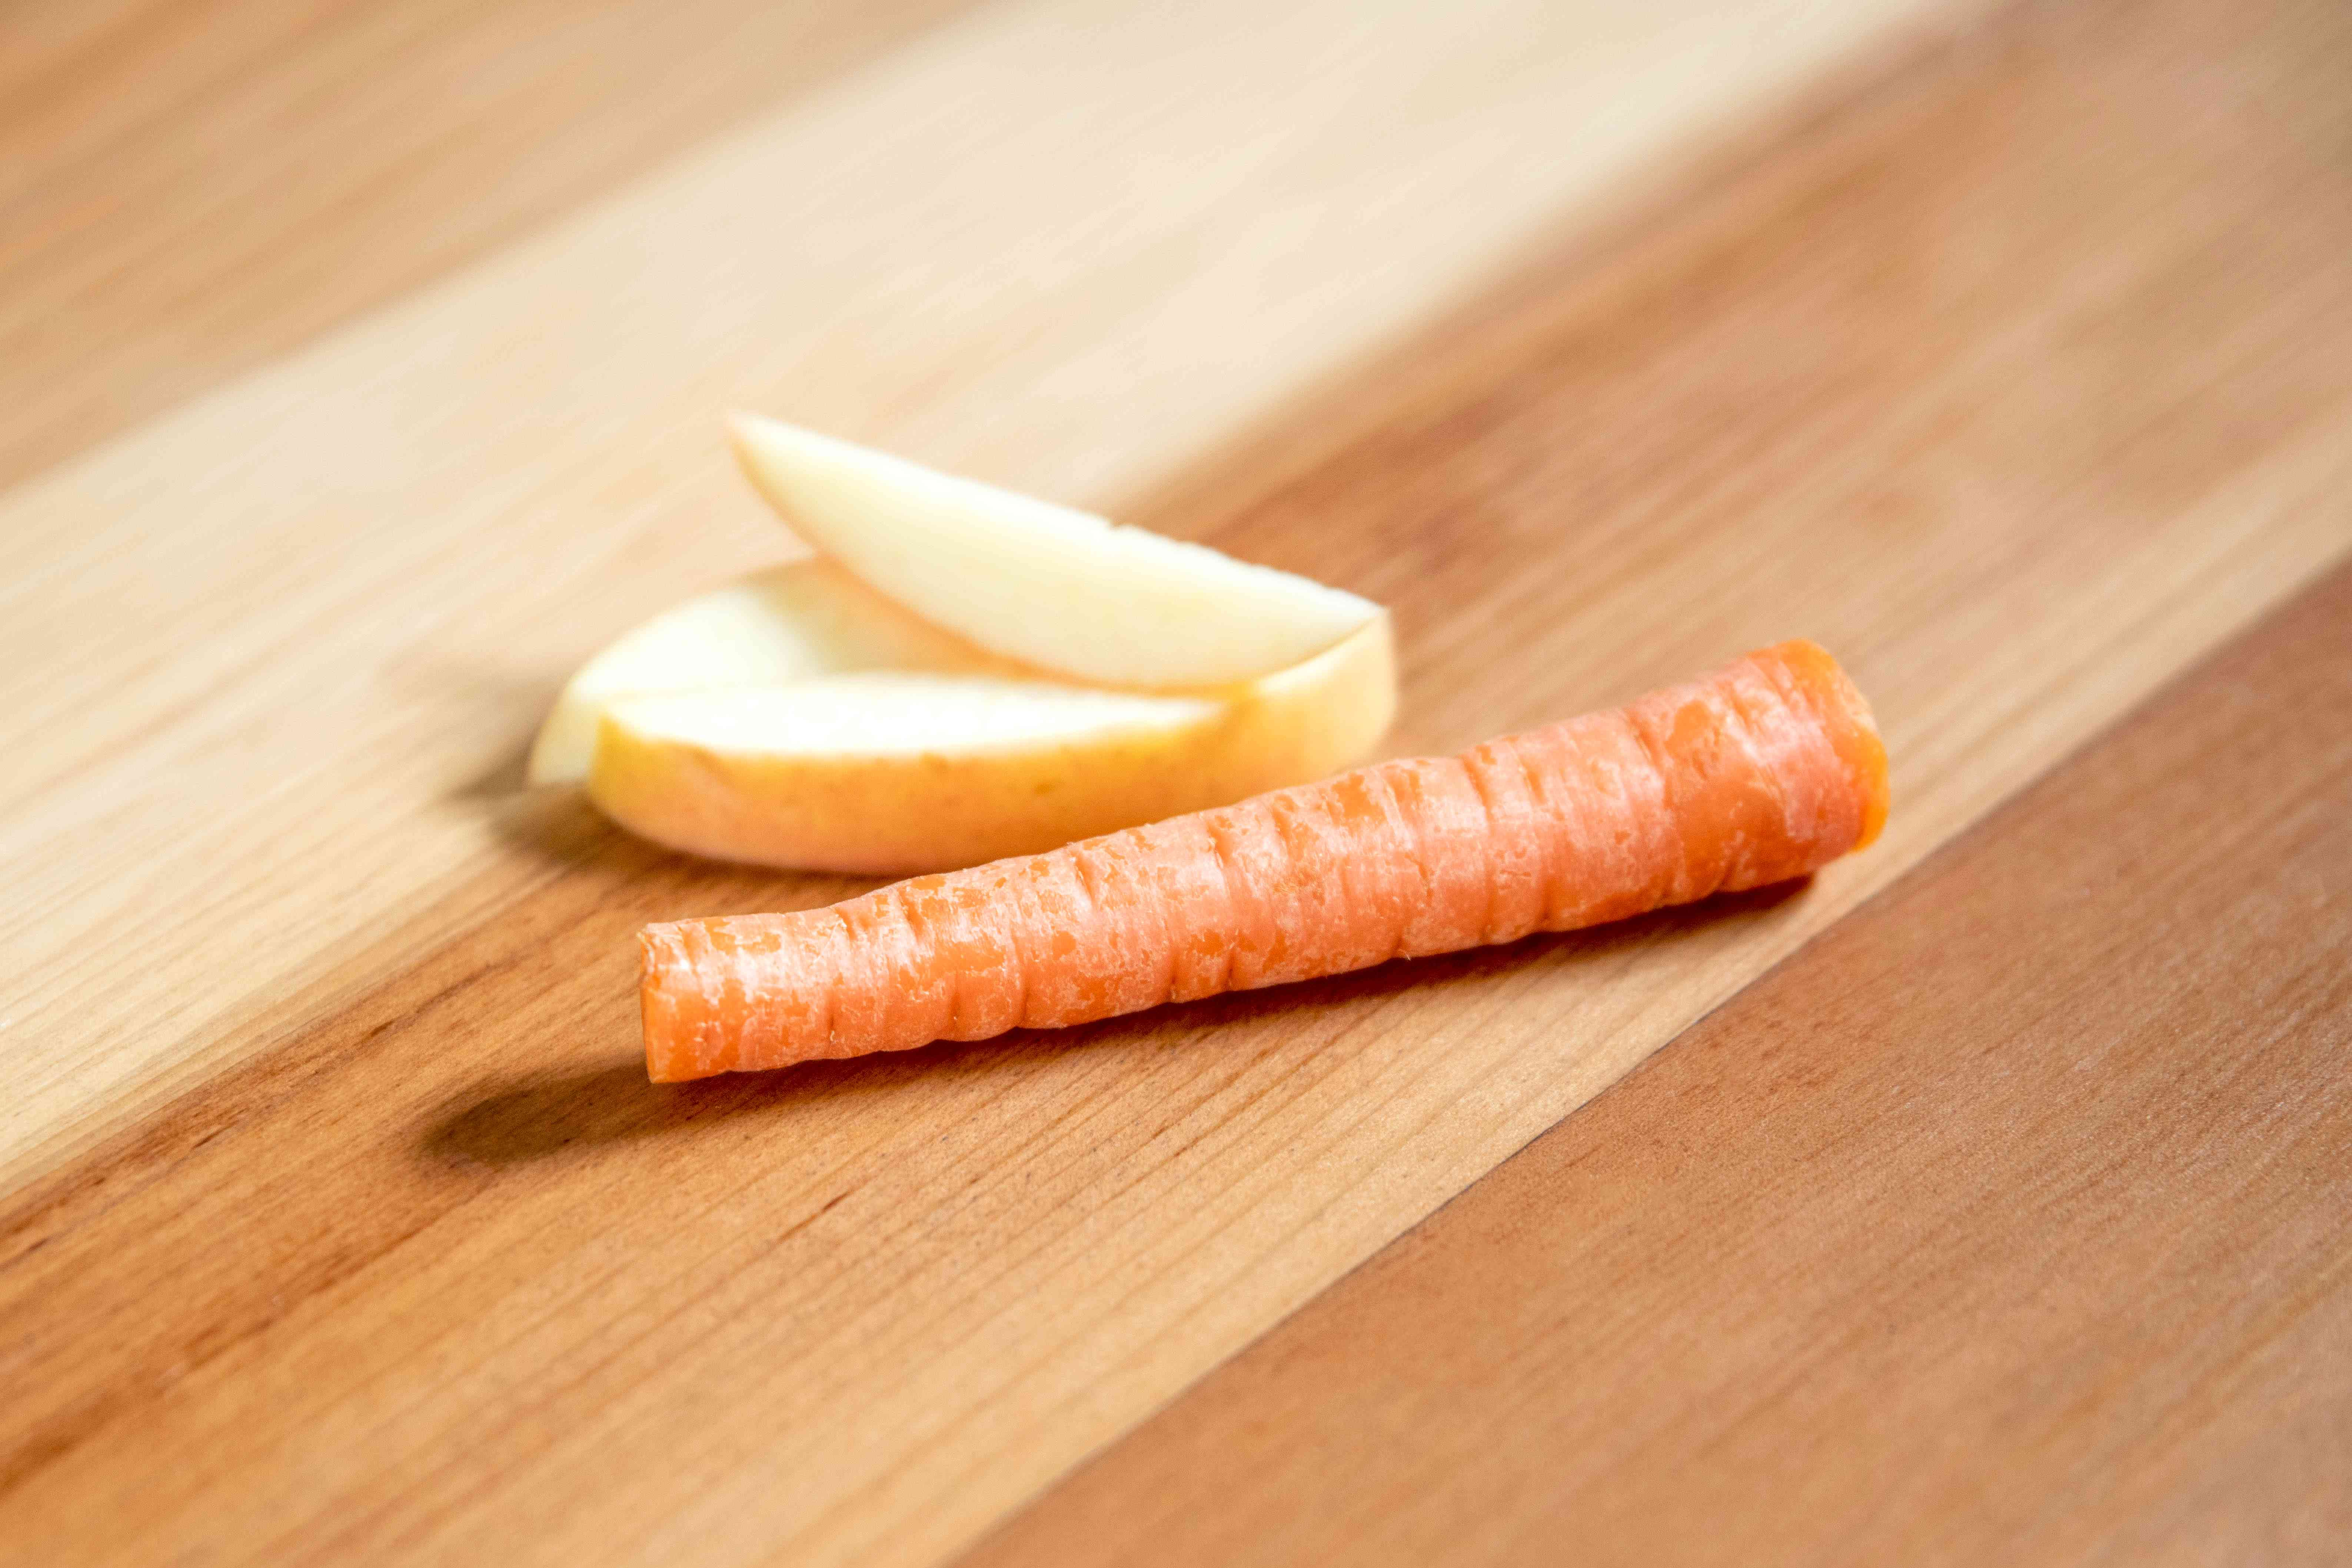 Apple slices and a carrot